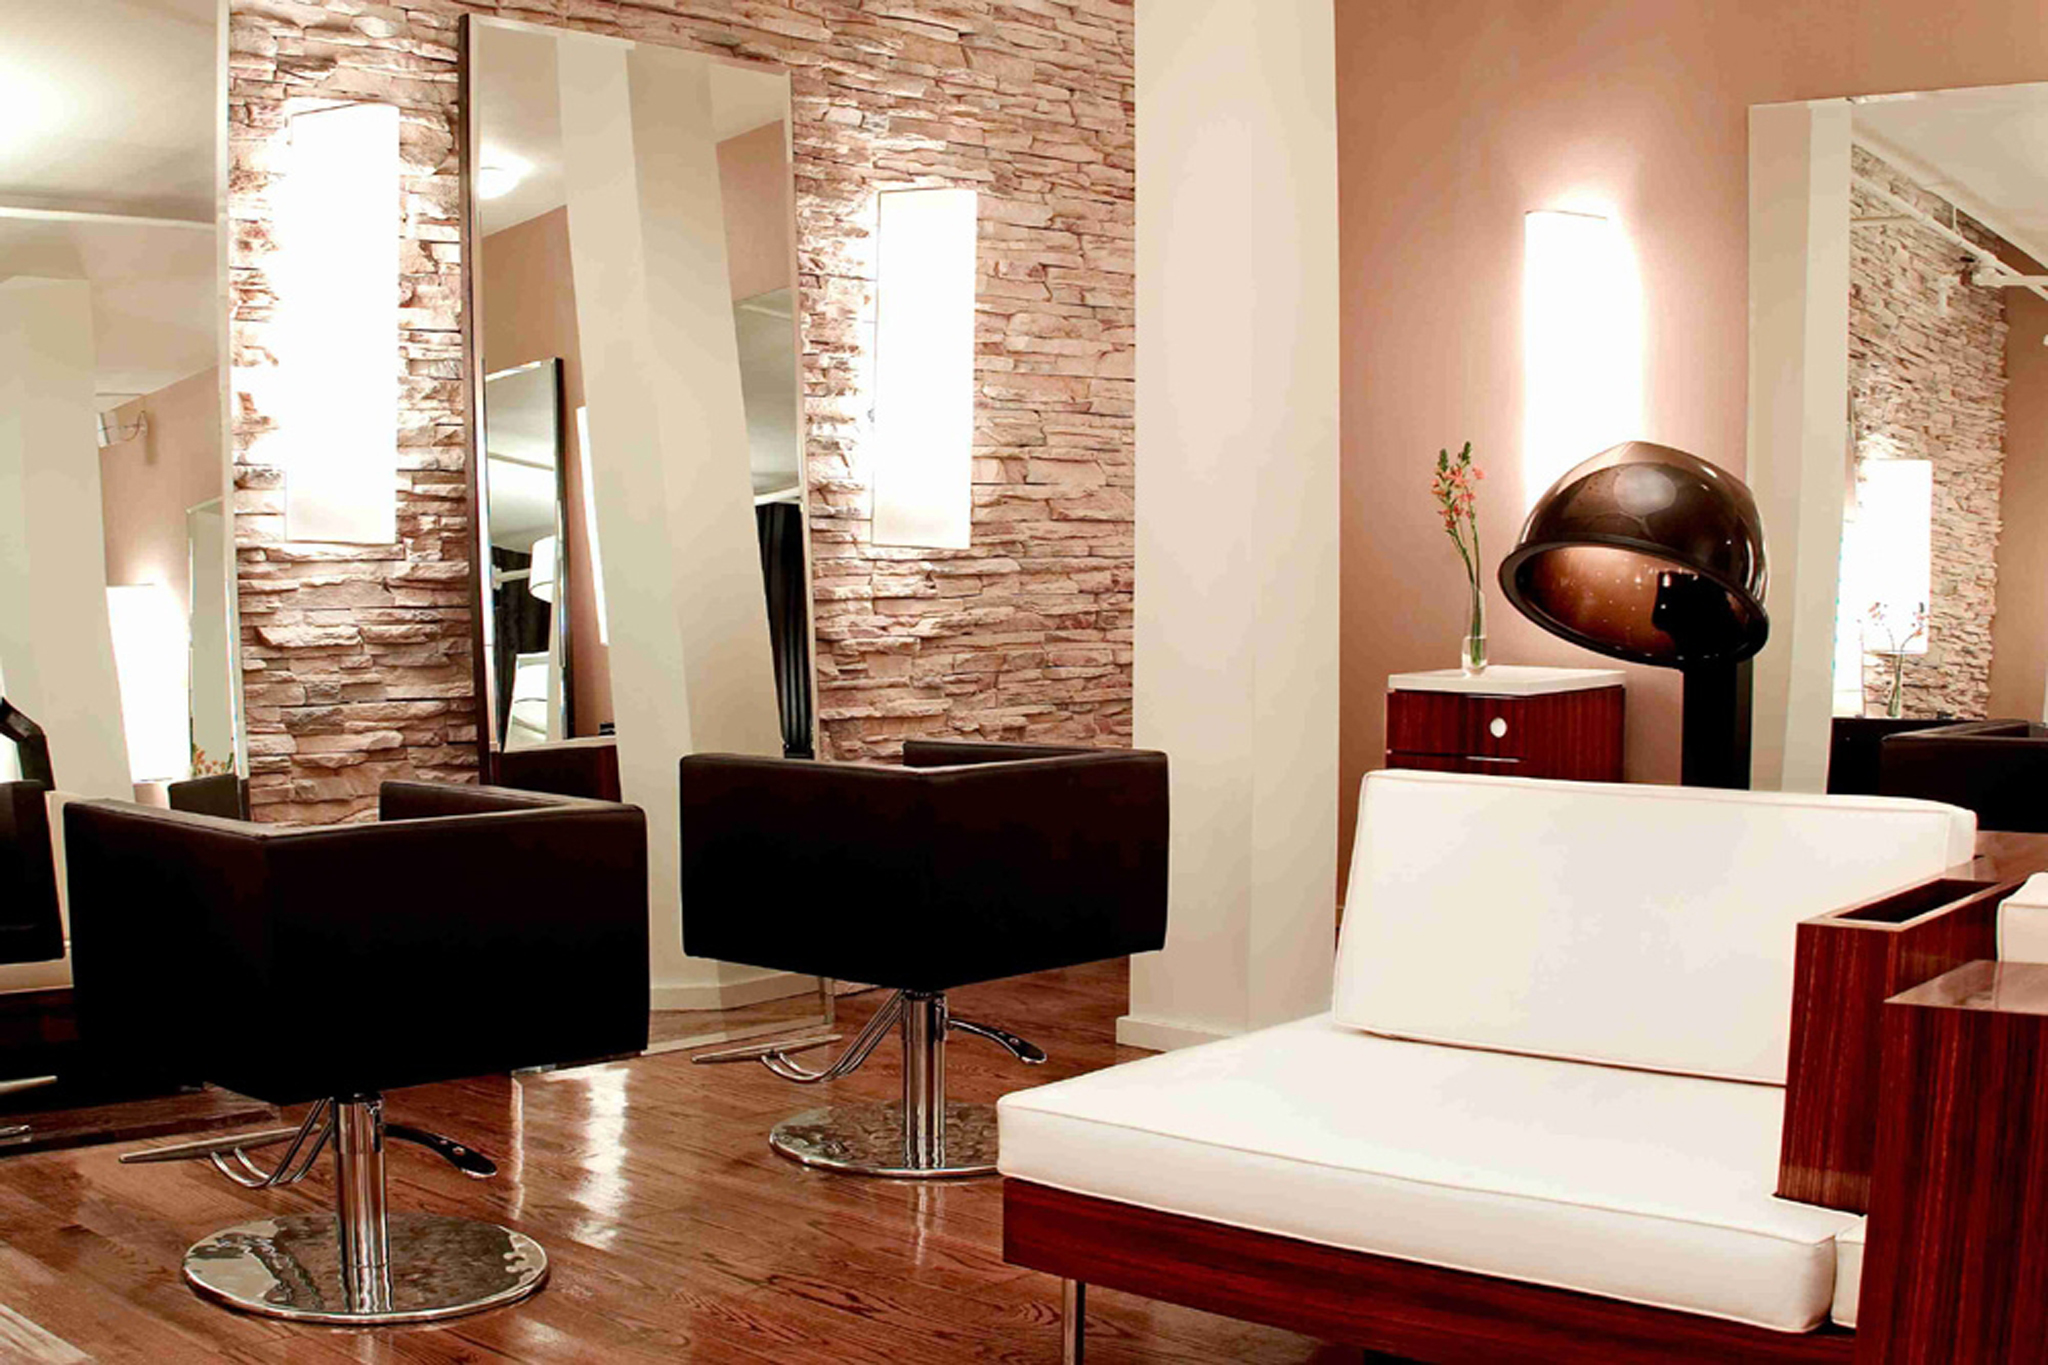 Salon Inspiration Antonio Prieto Salon Health And Beauty In Chelsea New York